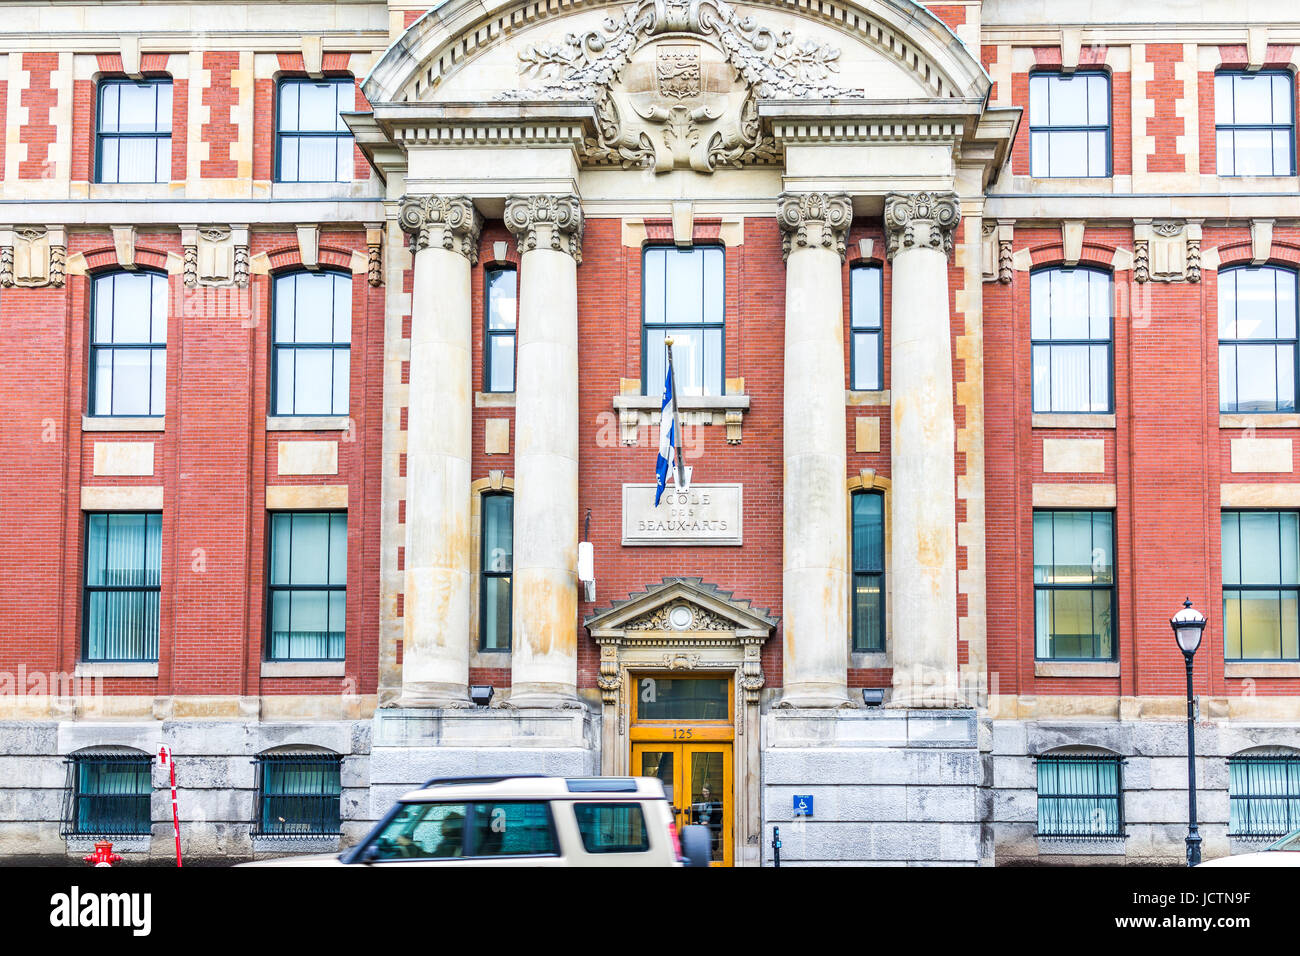 Montreal, Canada - May 26, 2017: Ecole des Beaux-Arts famous art school exterior in city in Quebec region with car Stock Photo